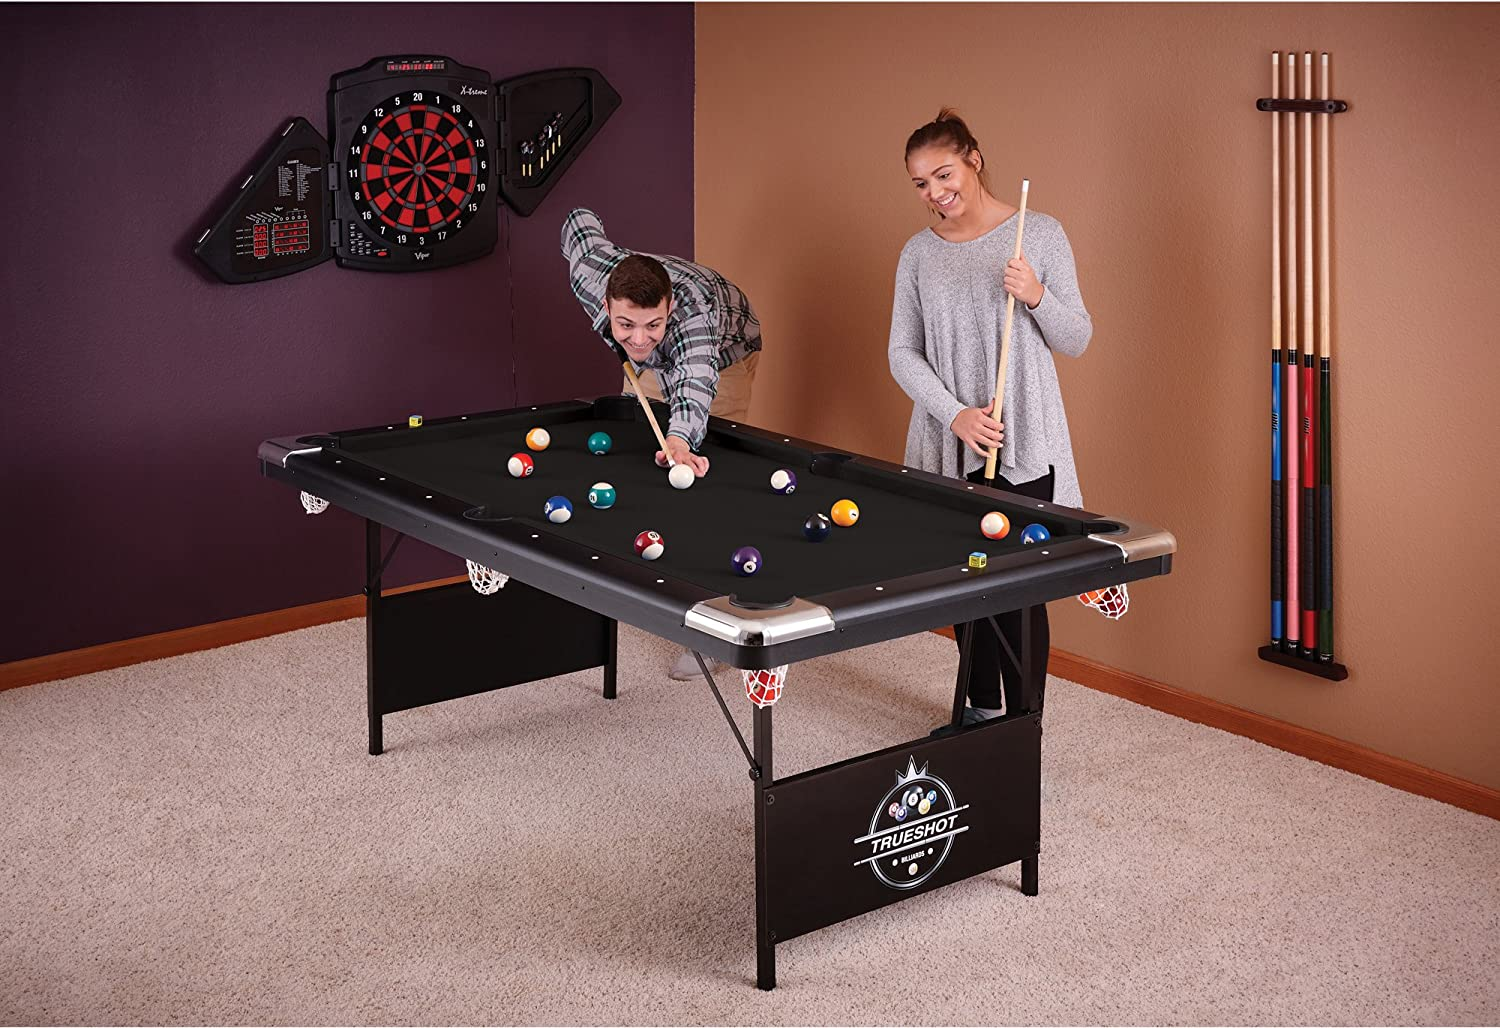 Amazoncom Fat Cat Trueshot Billiard Table Combination Game - Pool table repair san diego